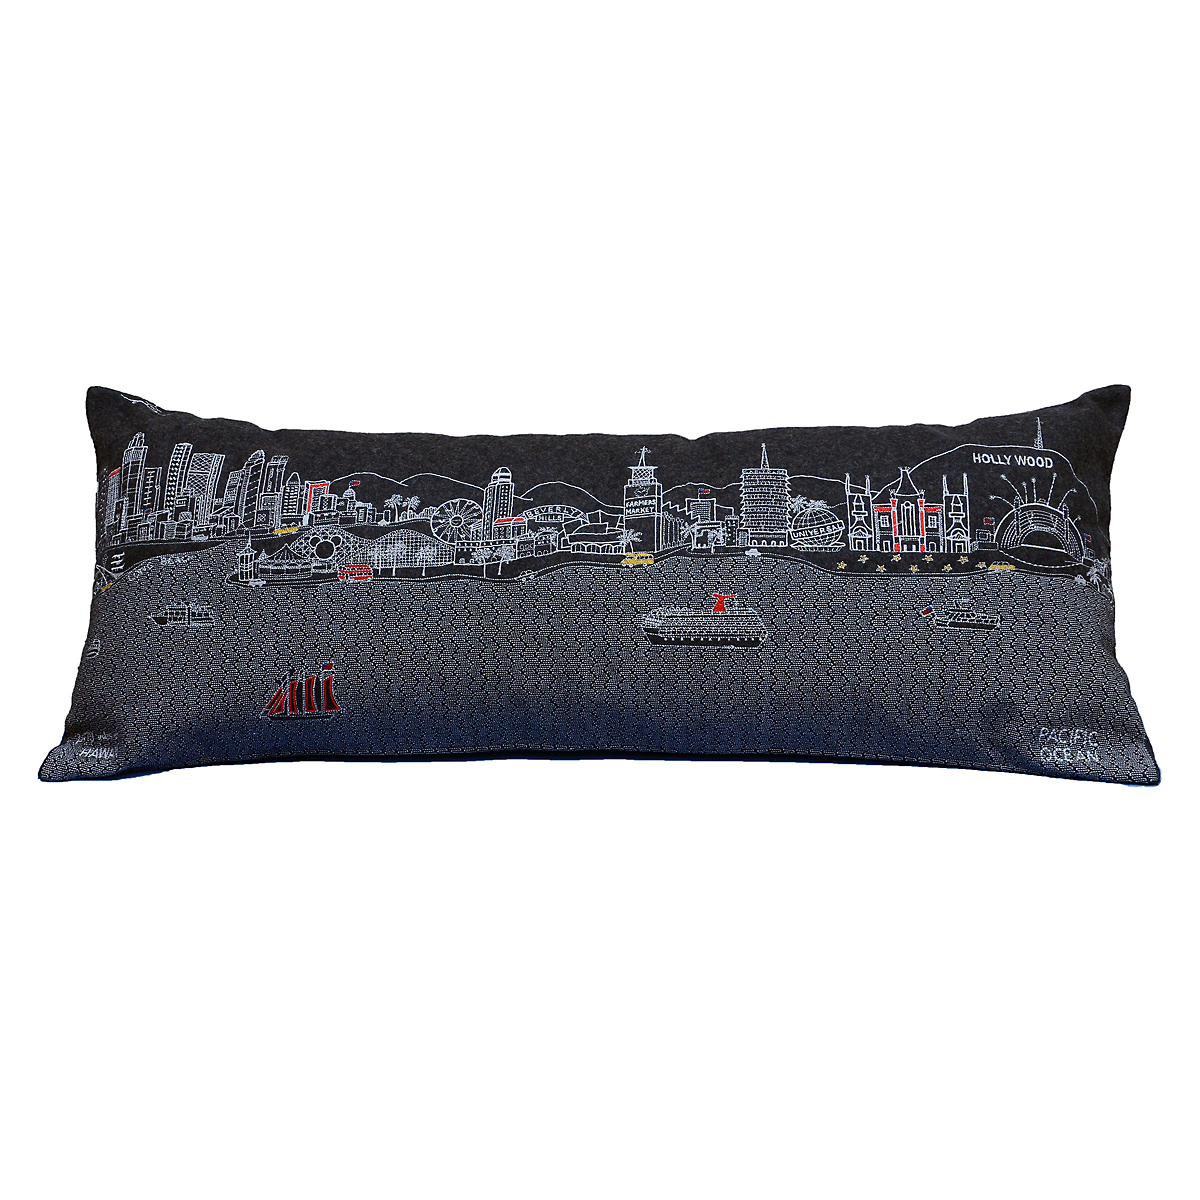 City Skyline Pillow, Los Angeles